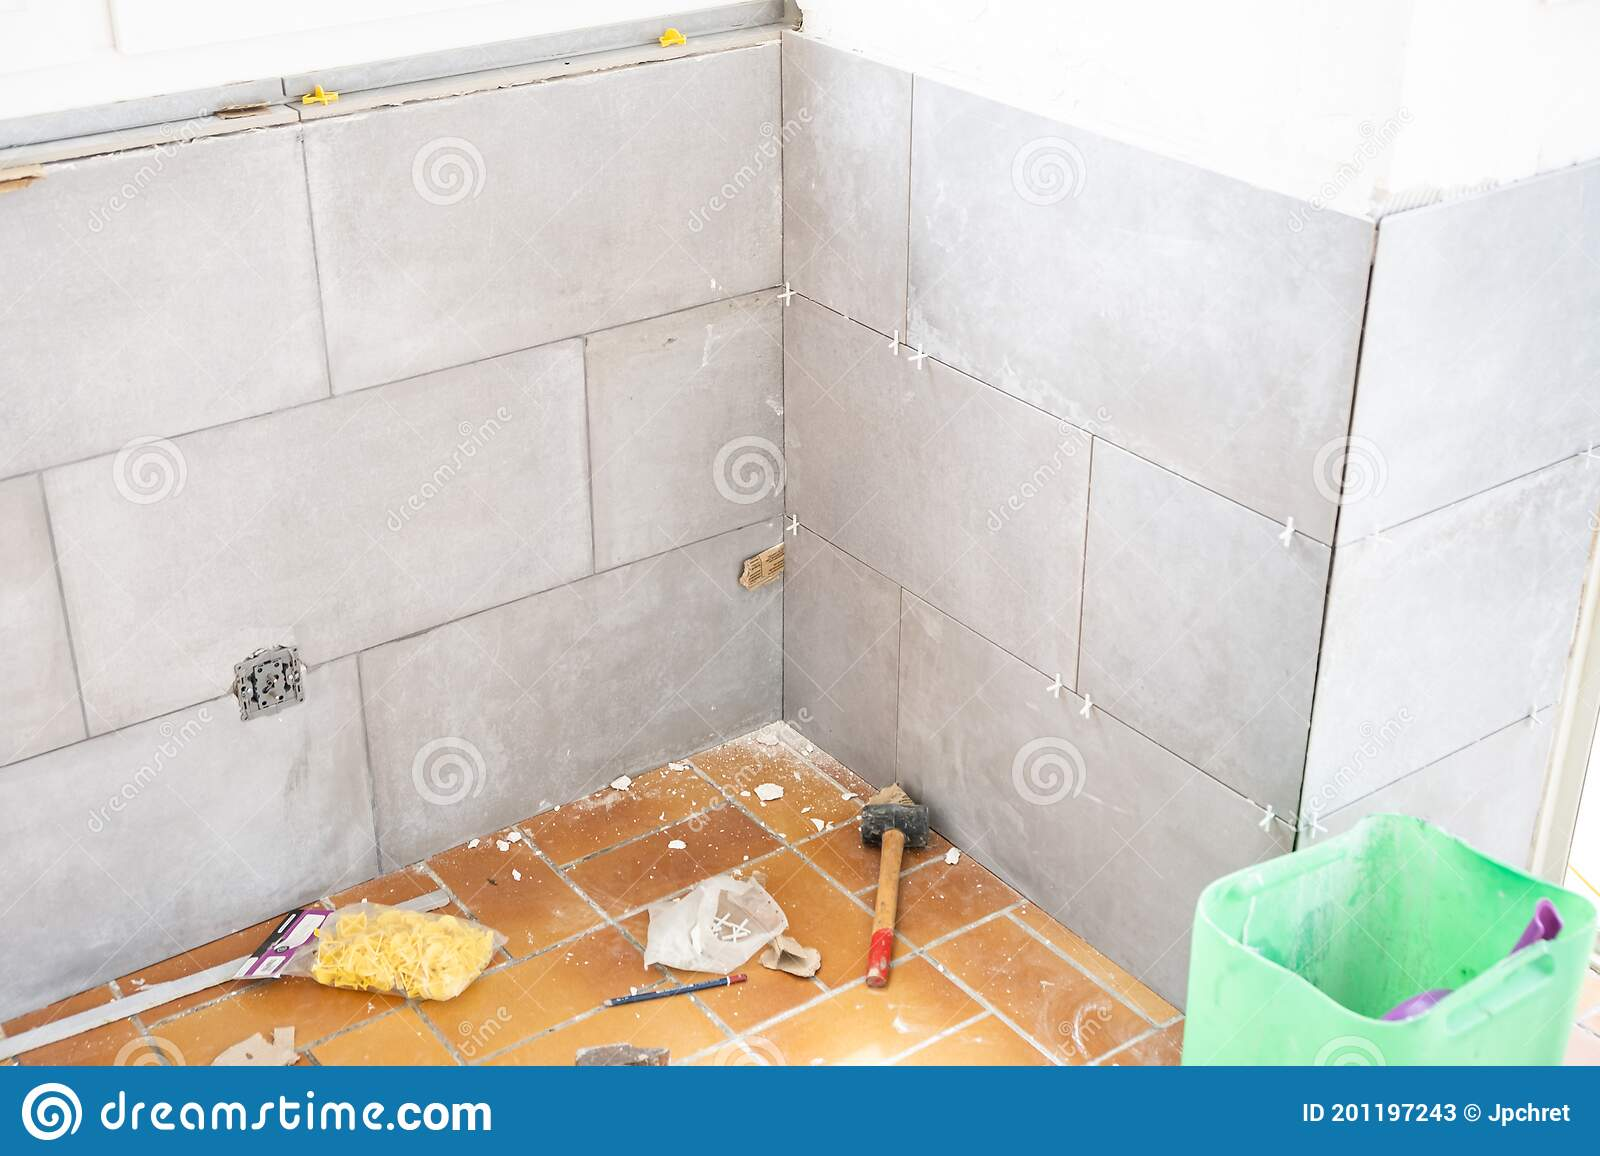 ceramic tile installation site with its tools stock image image of manual hammer 201197243